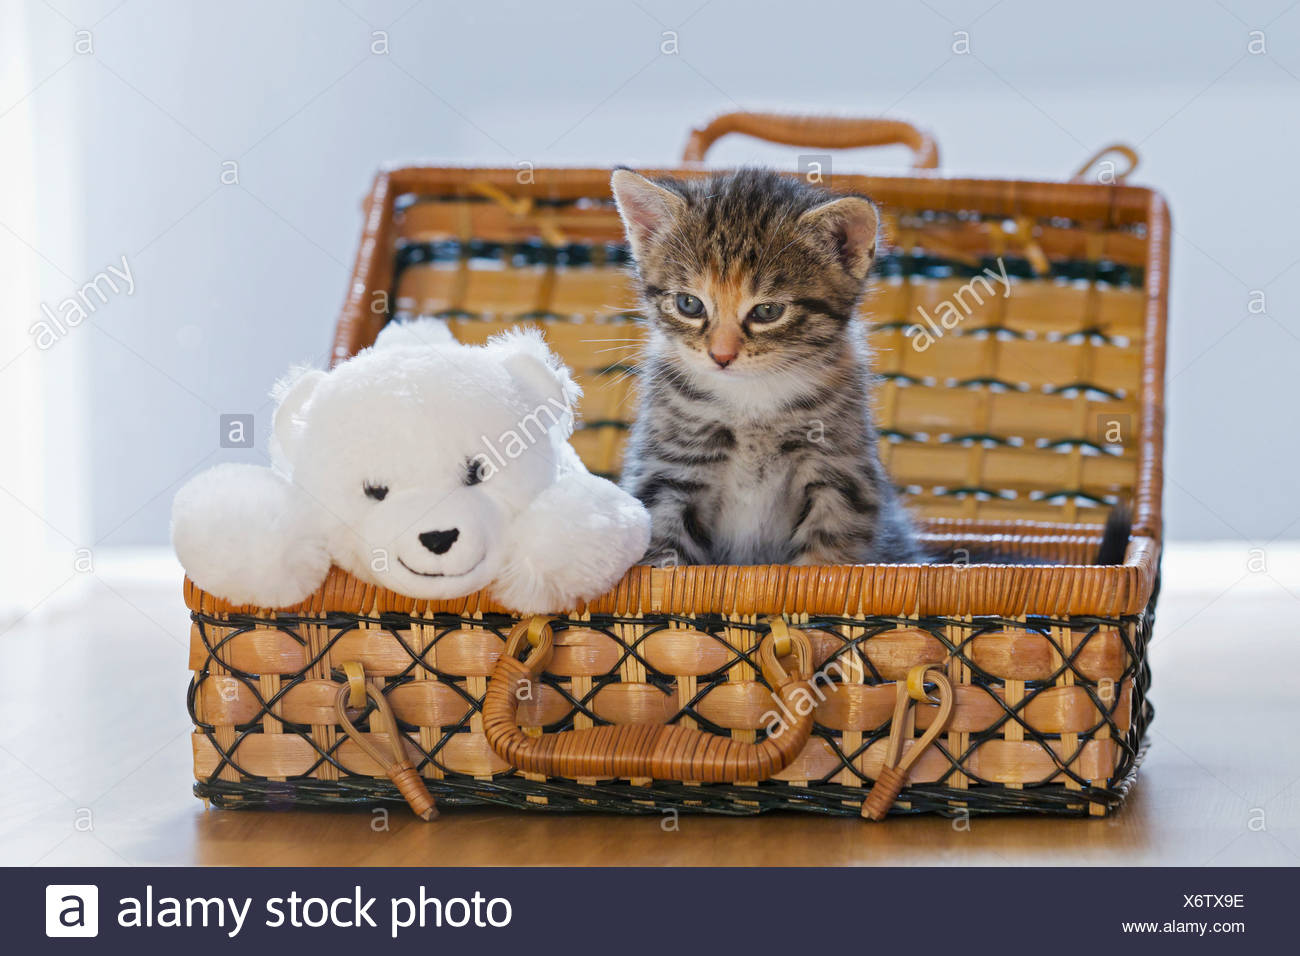 Germany, Kitten with soft toy in box, close up - Stock Image